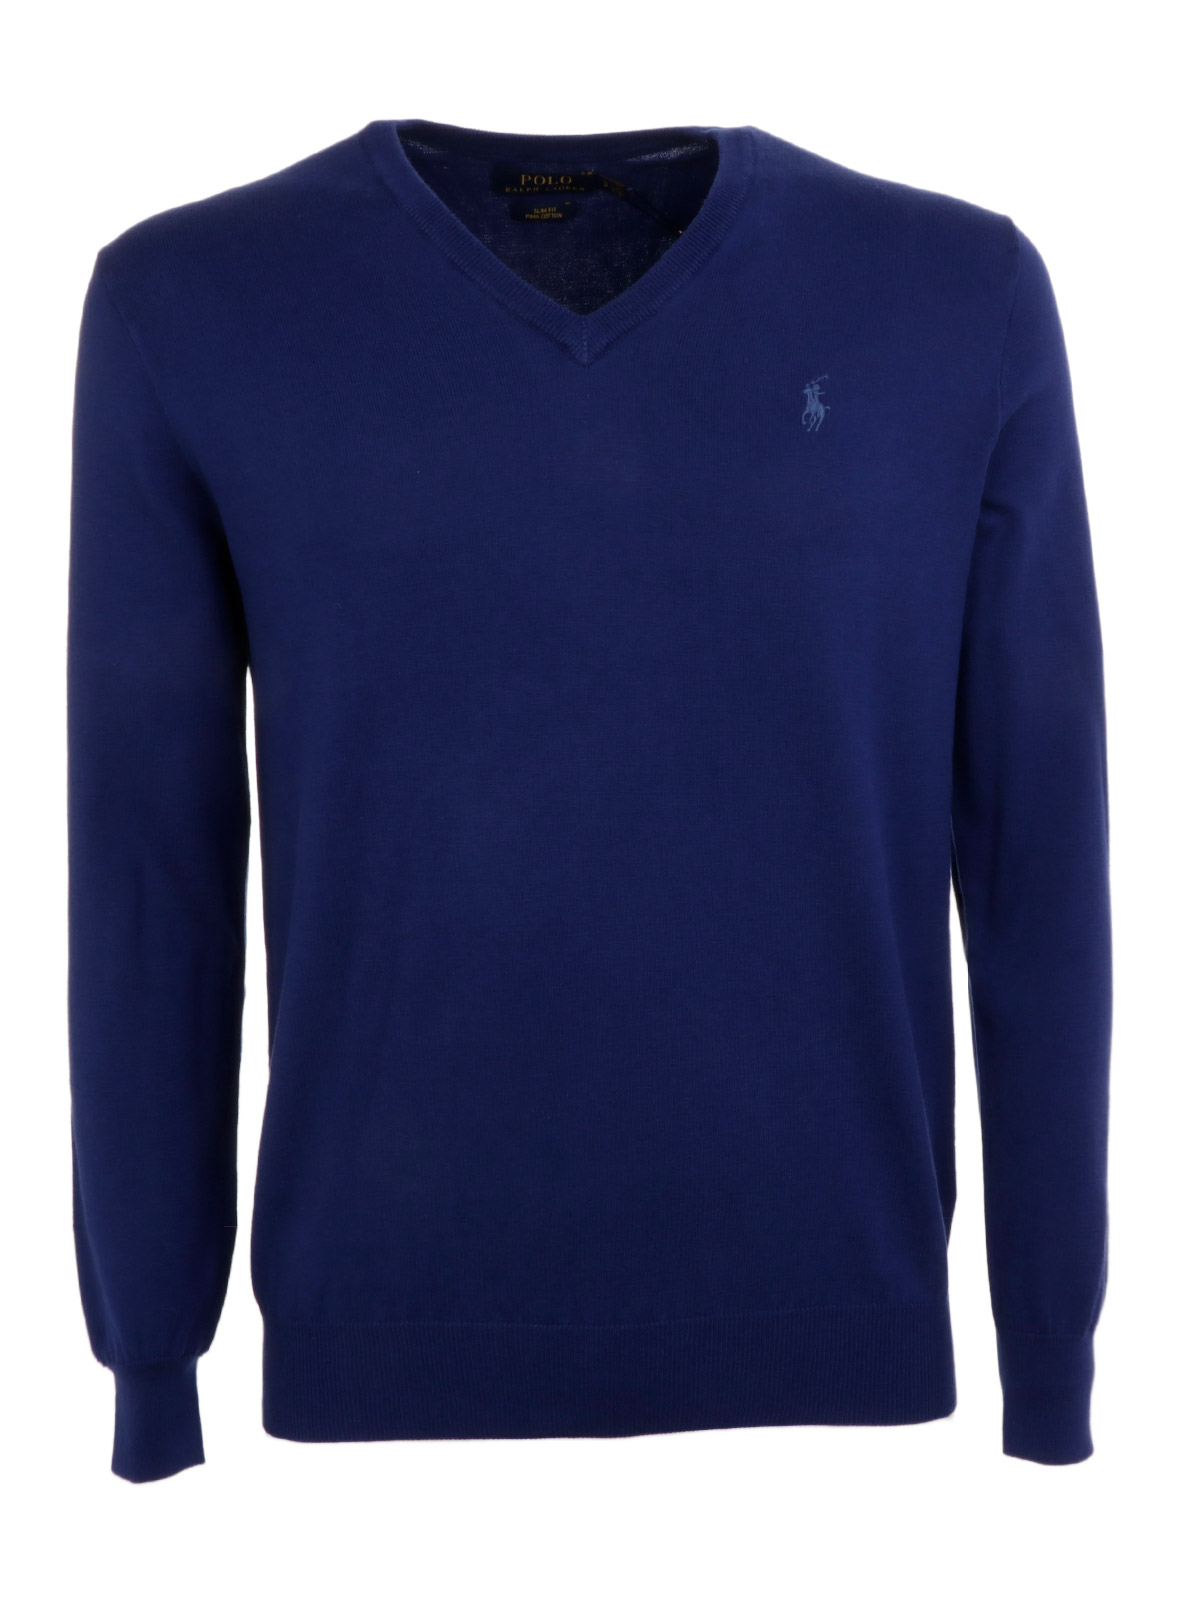 61dfee037 ... new zealand picture of polo ralph lauren mens v neck sweater d1451 758f9